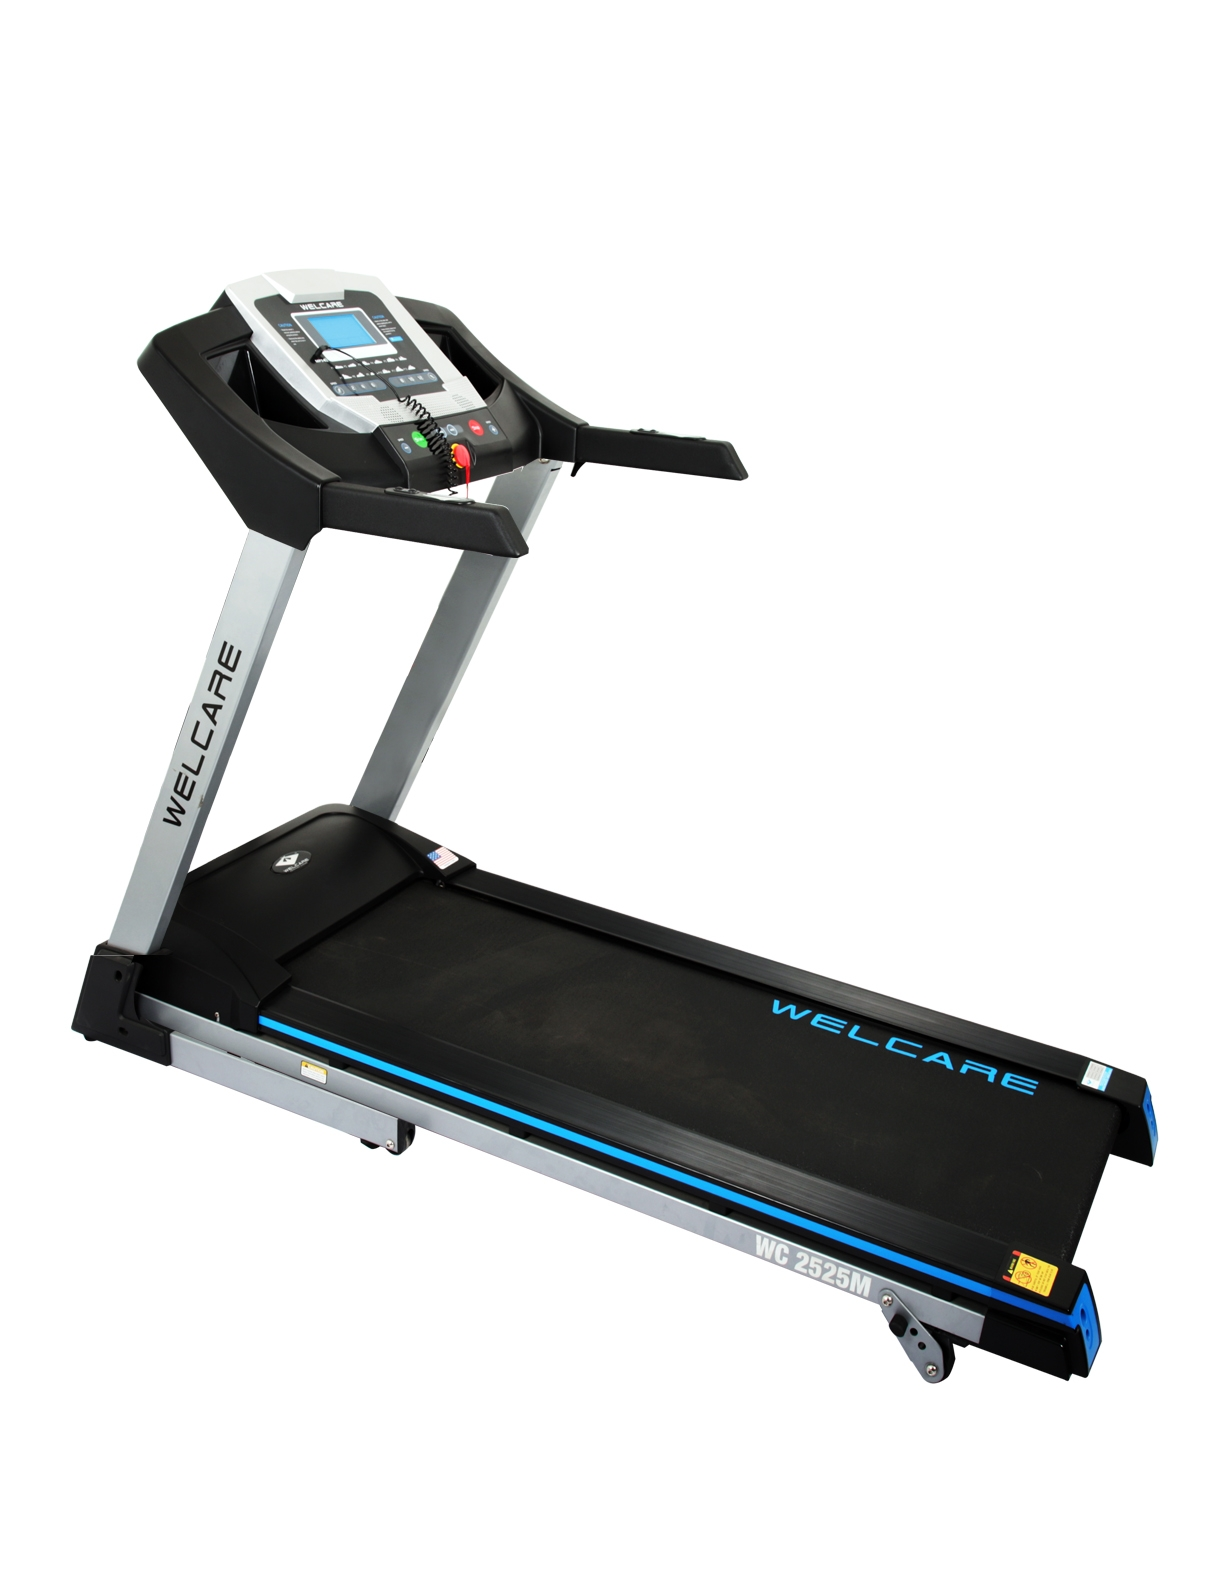 WC 2525I MOTORIZED TREADMILL